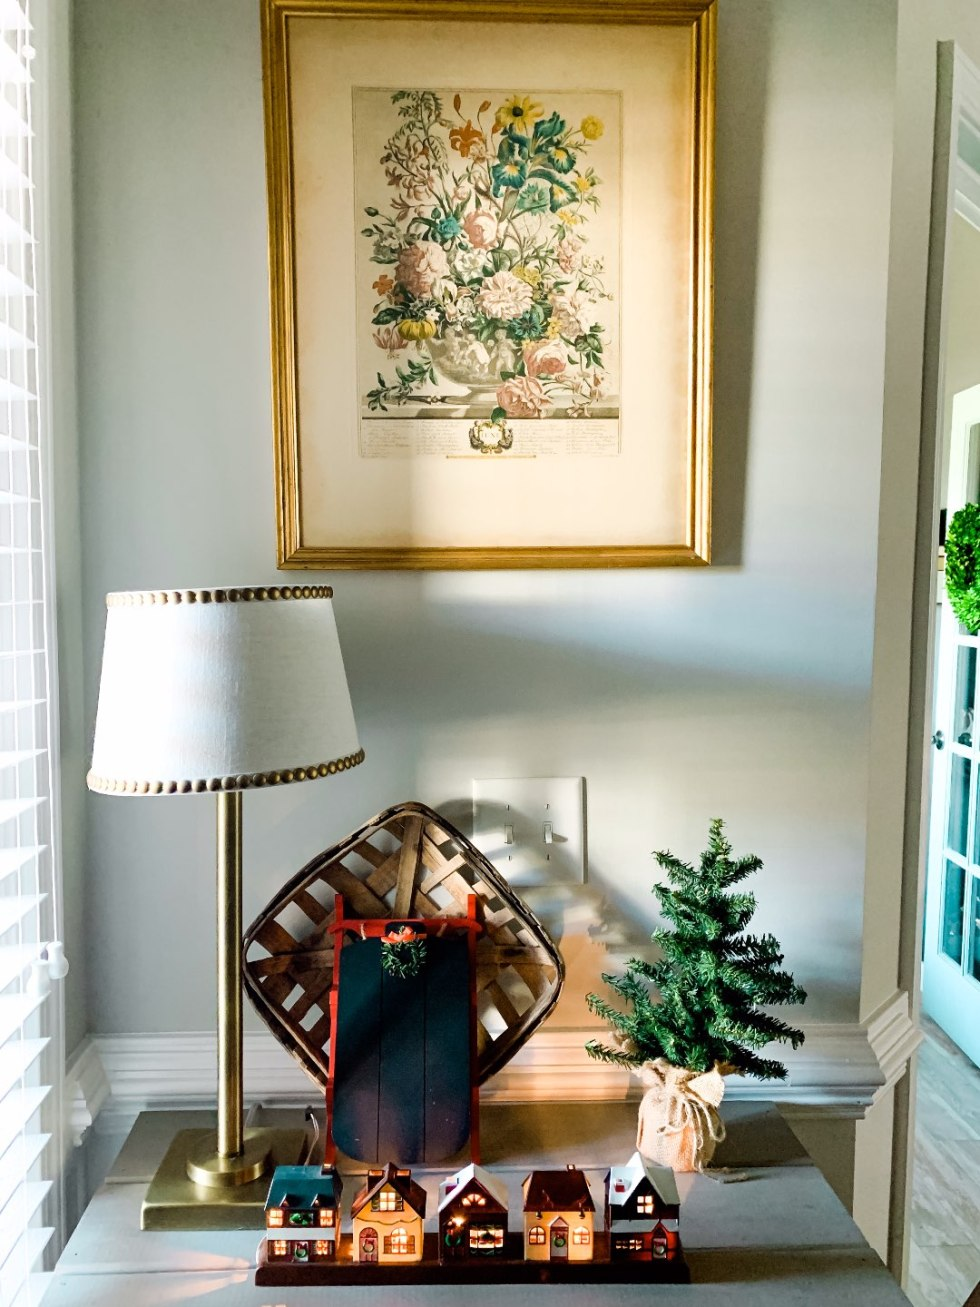 Holiday Home Decor Tour - I'm Fixin' To - @mbg0112 | Holiday Home Decor Tour by popular North Carolina life and style blog, I'm Fixin' To: image of a table with a Christmas village, mini pine tree, and decorative sled on it.